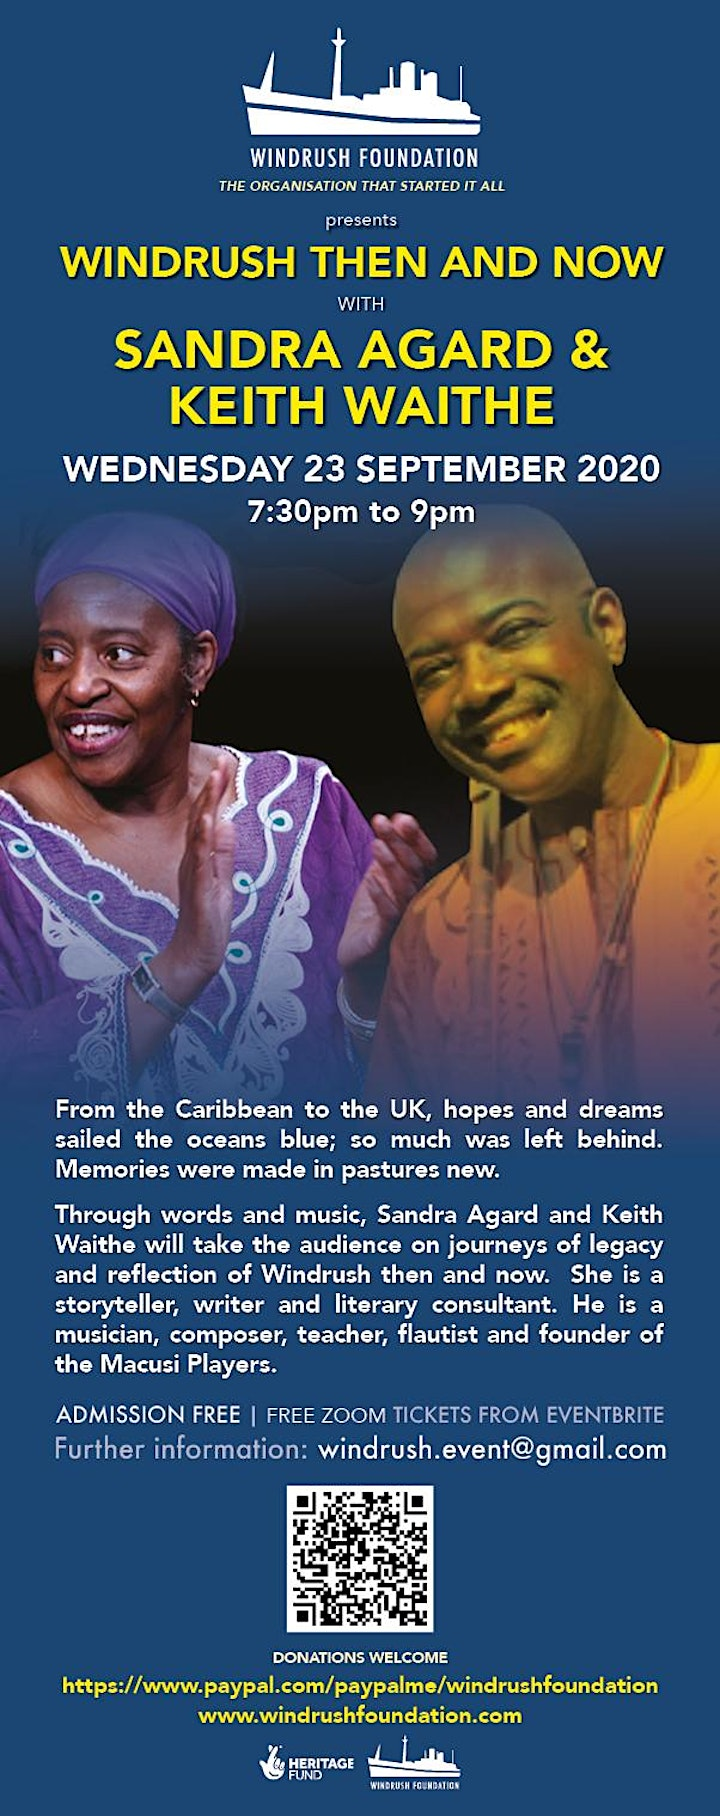 WINDRUSH THEN AND NOW WITH SANDRA AGARD & KEITH WAITHE image